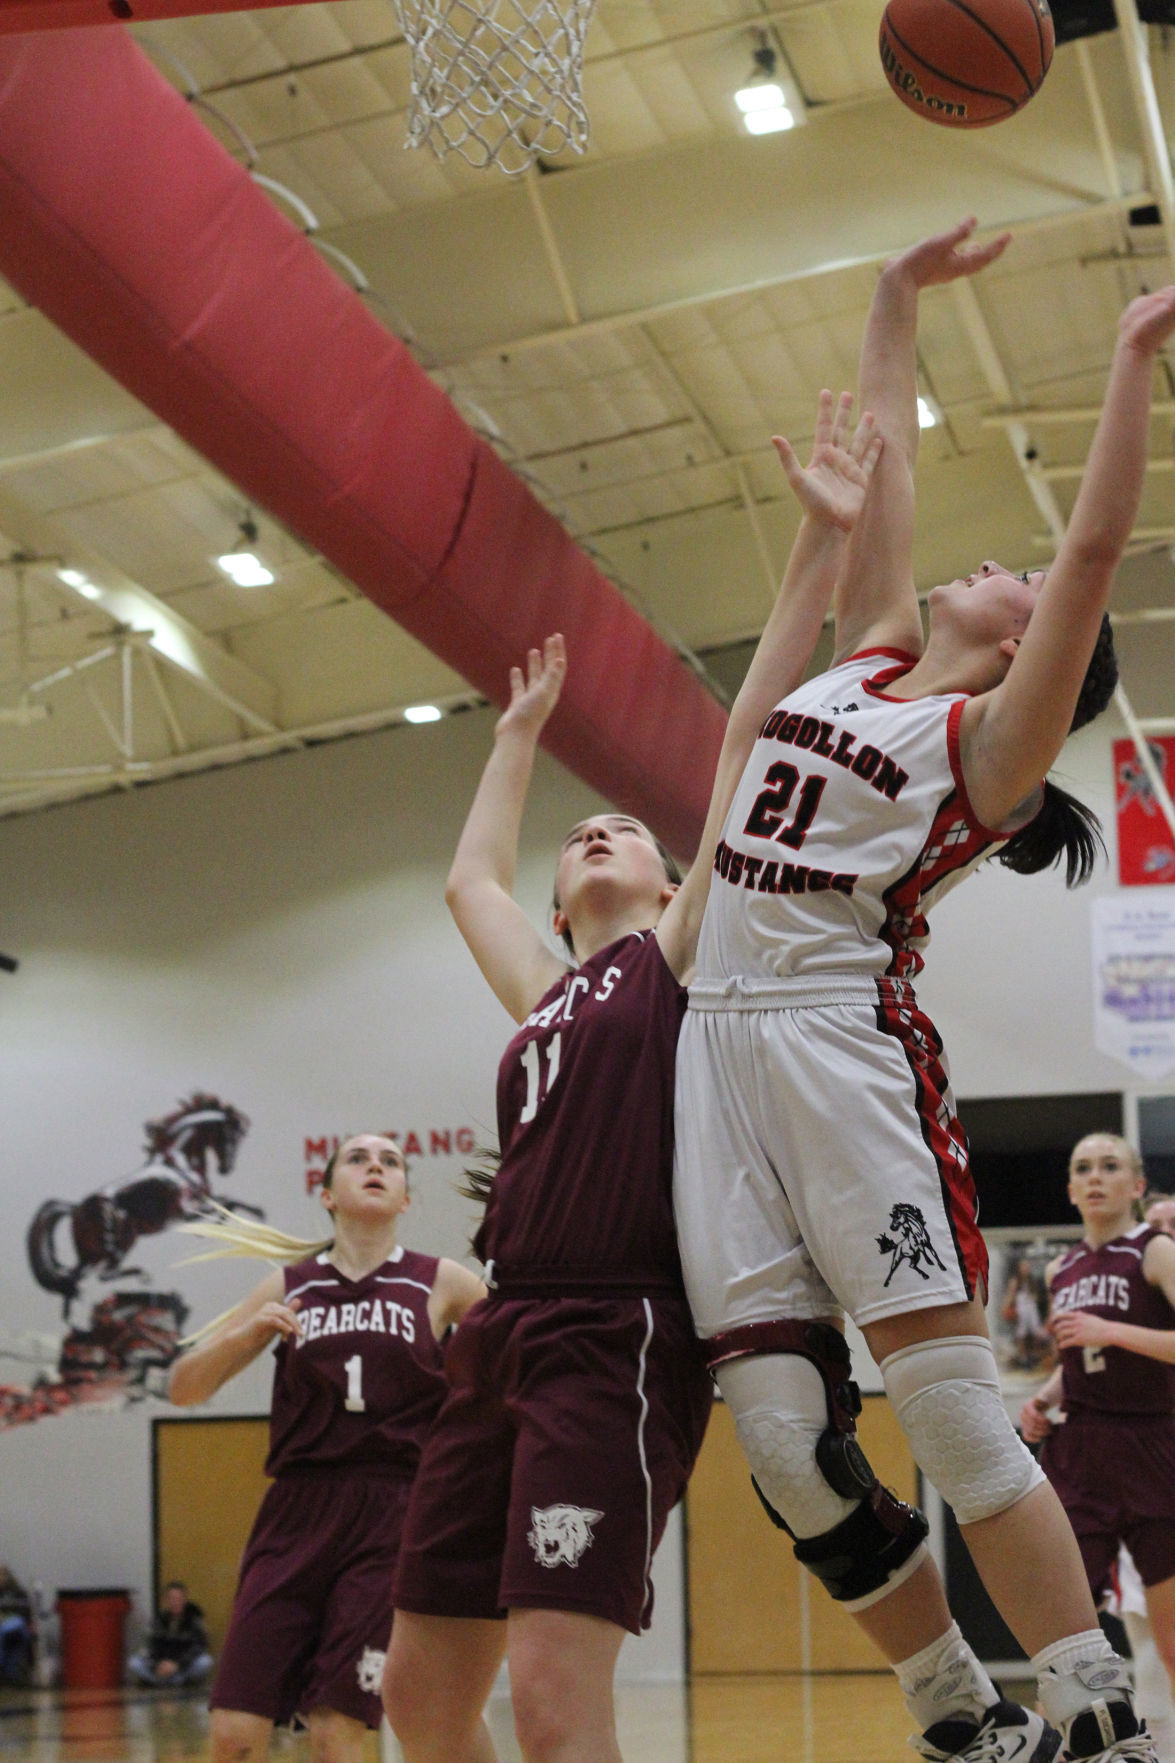 Mogollon girls win play-in, advance to state tourney